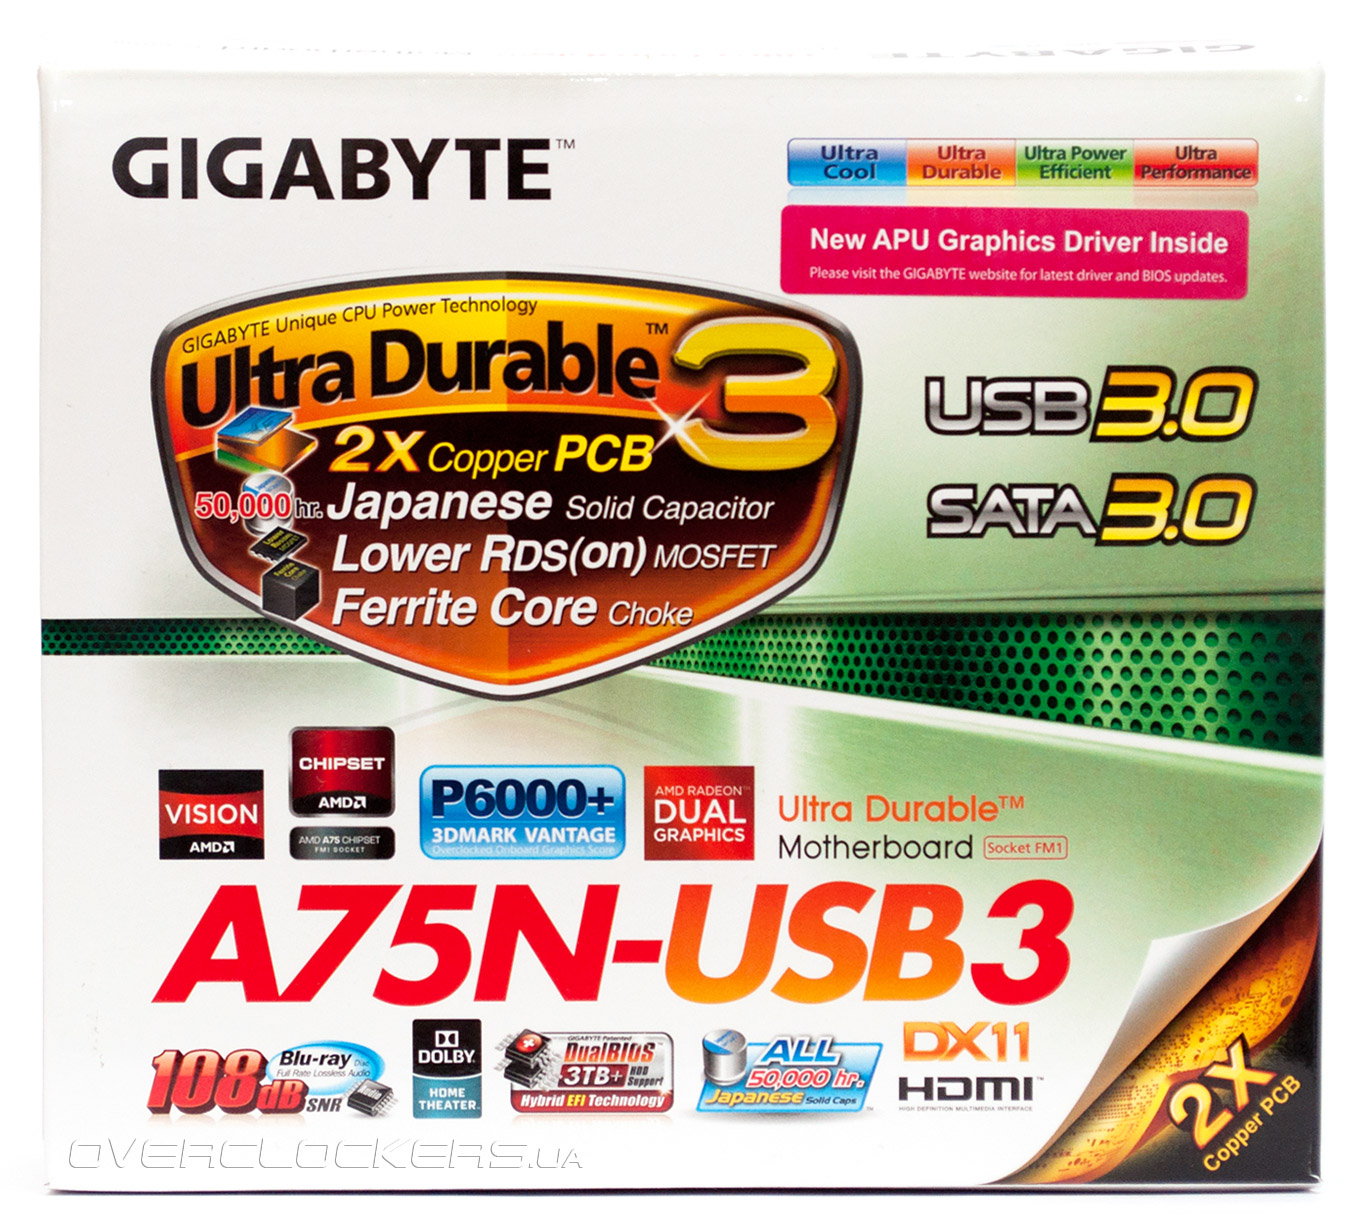 GIGABYTE GA-A75N-USB3 AMD GRAPHICS DRIVERS